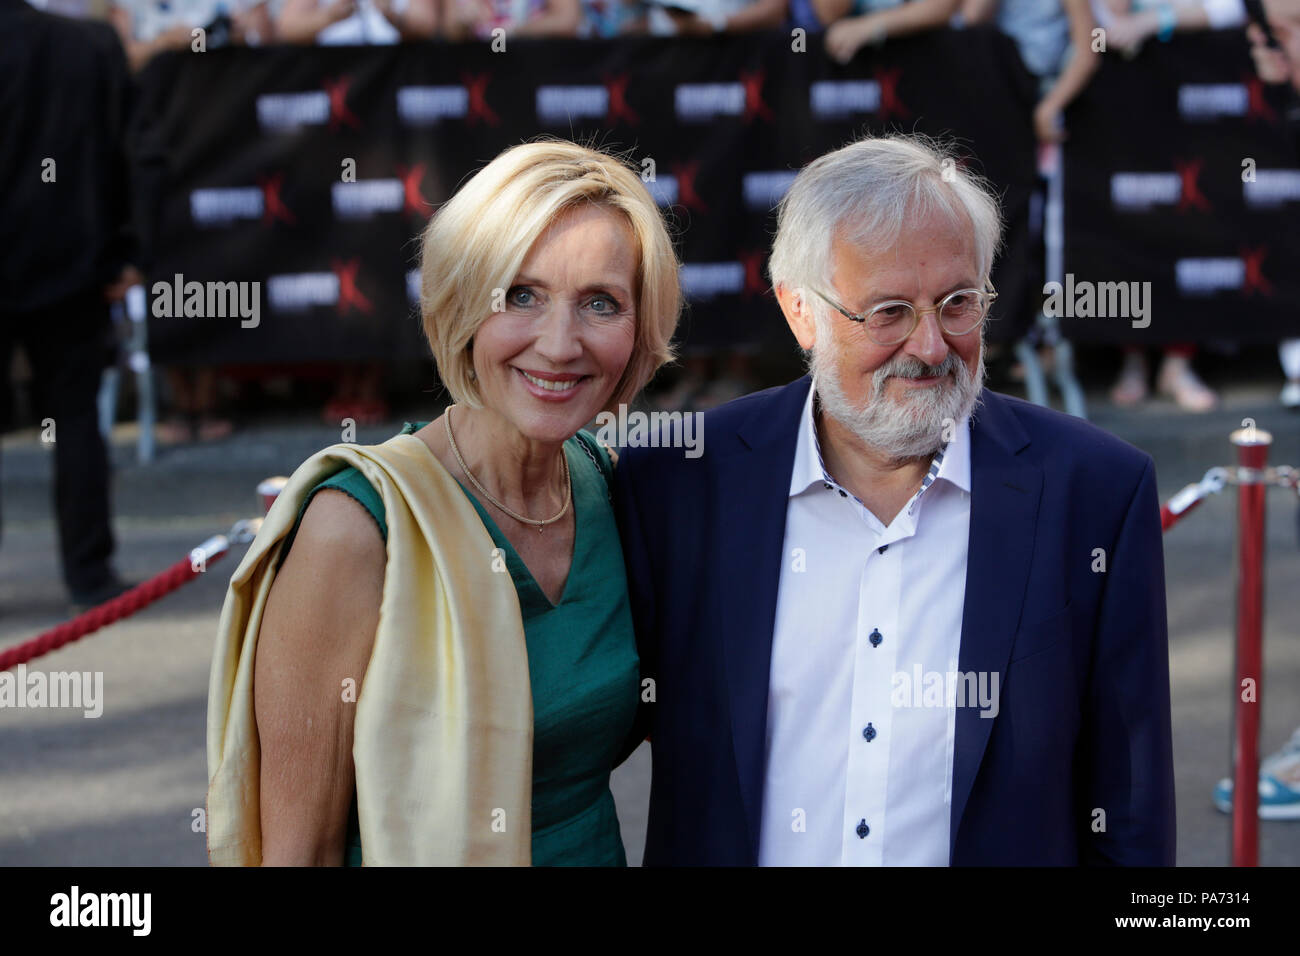 Worms, Germany. 20th July 2018. German television and news presenter Petra Gerster and her husband German publicist Christian Nurnberger arrive for the premiere of the 'Nibelungenfestspielen' In Worms.  Actors, politicians and other VIPs attended the opening night of the 2018 Nibelungen-Festspiele (Nibelung Festival) in Worms. The play in the 17. Season of the festival is called 'Siegfrieds Erben' (Siegfried's heirs) from authors Feridun Zaimoglu and Gunter Senkel, and directed by Roger Vontobel. It begins, where the traditional Song of the Nibelungs ends and shows the aftermath of the massacr - Stock Image